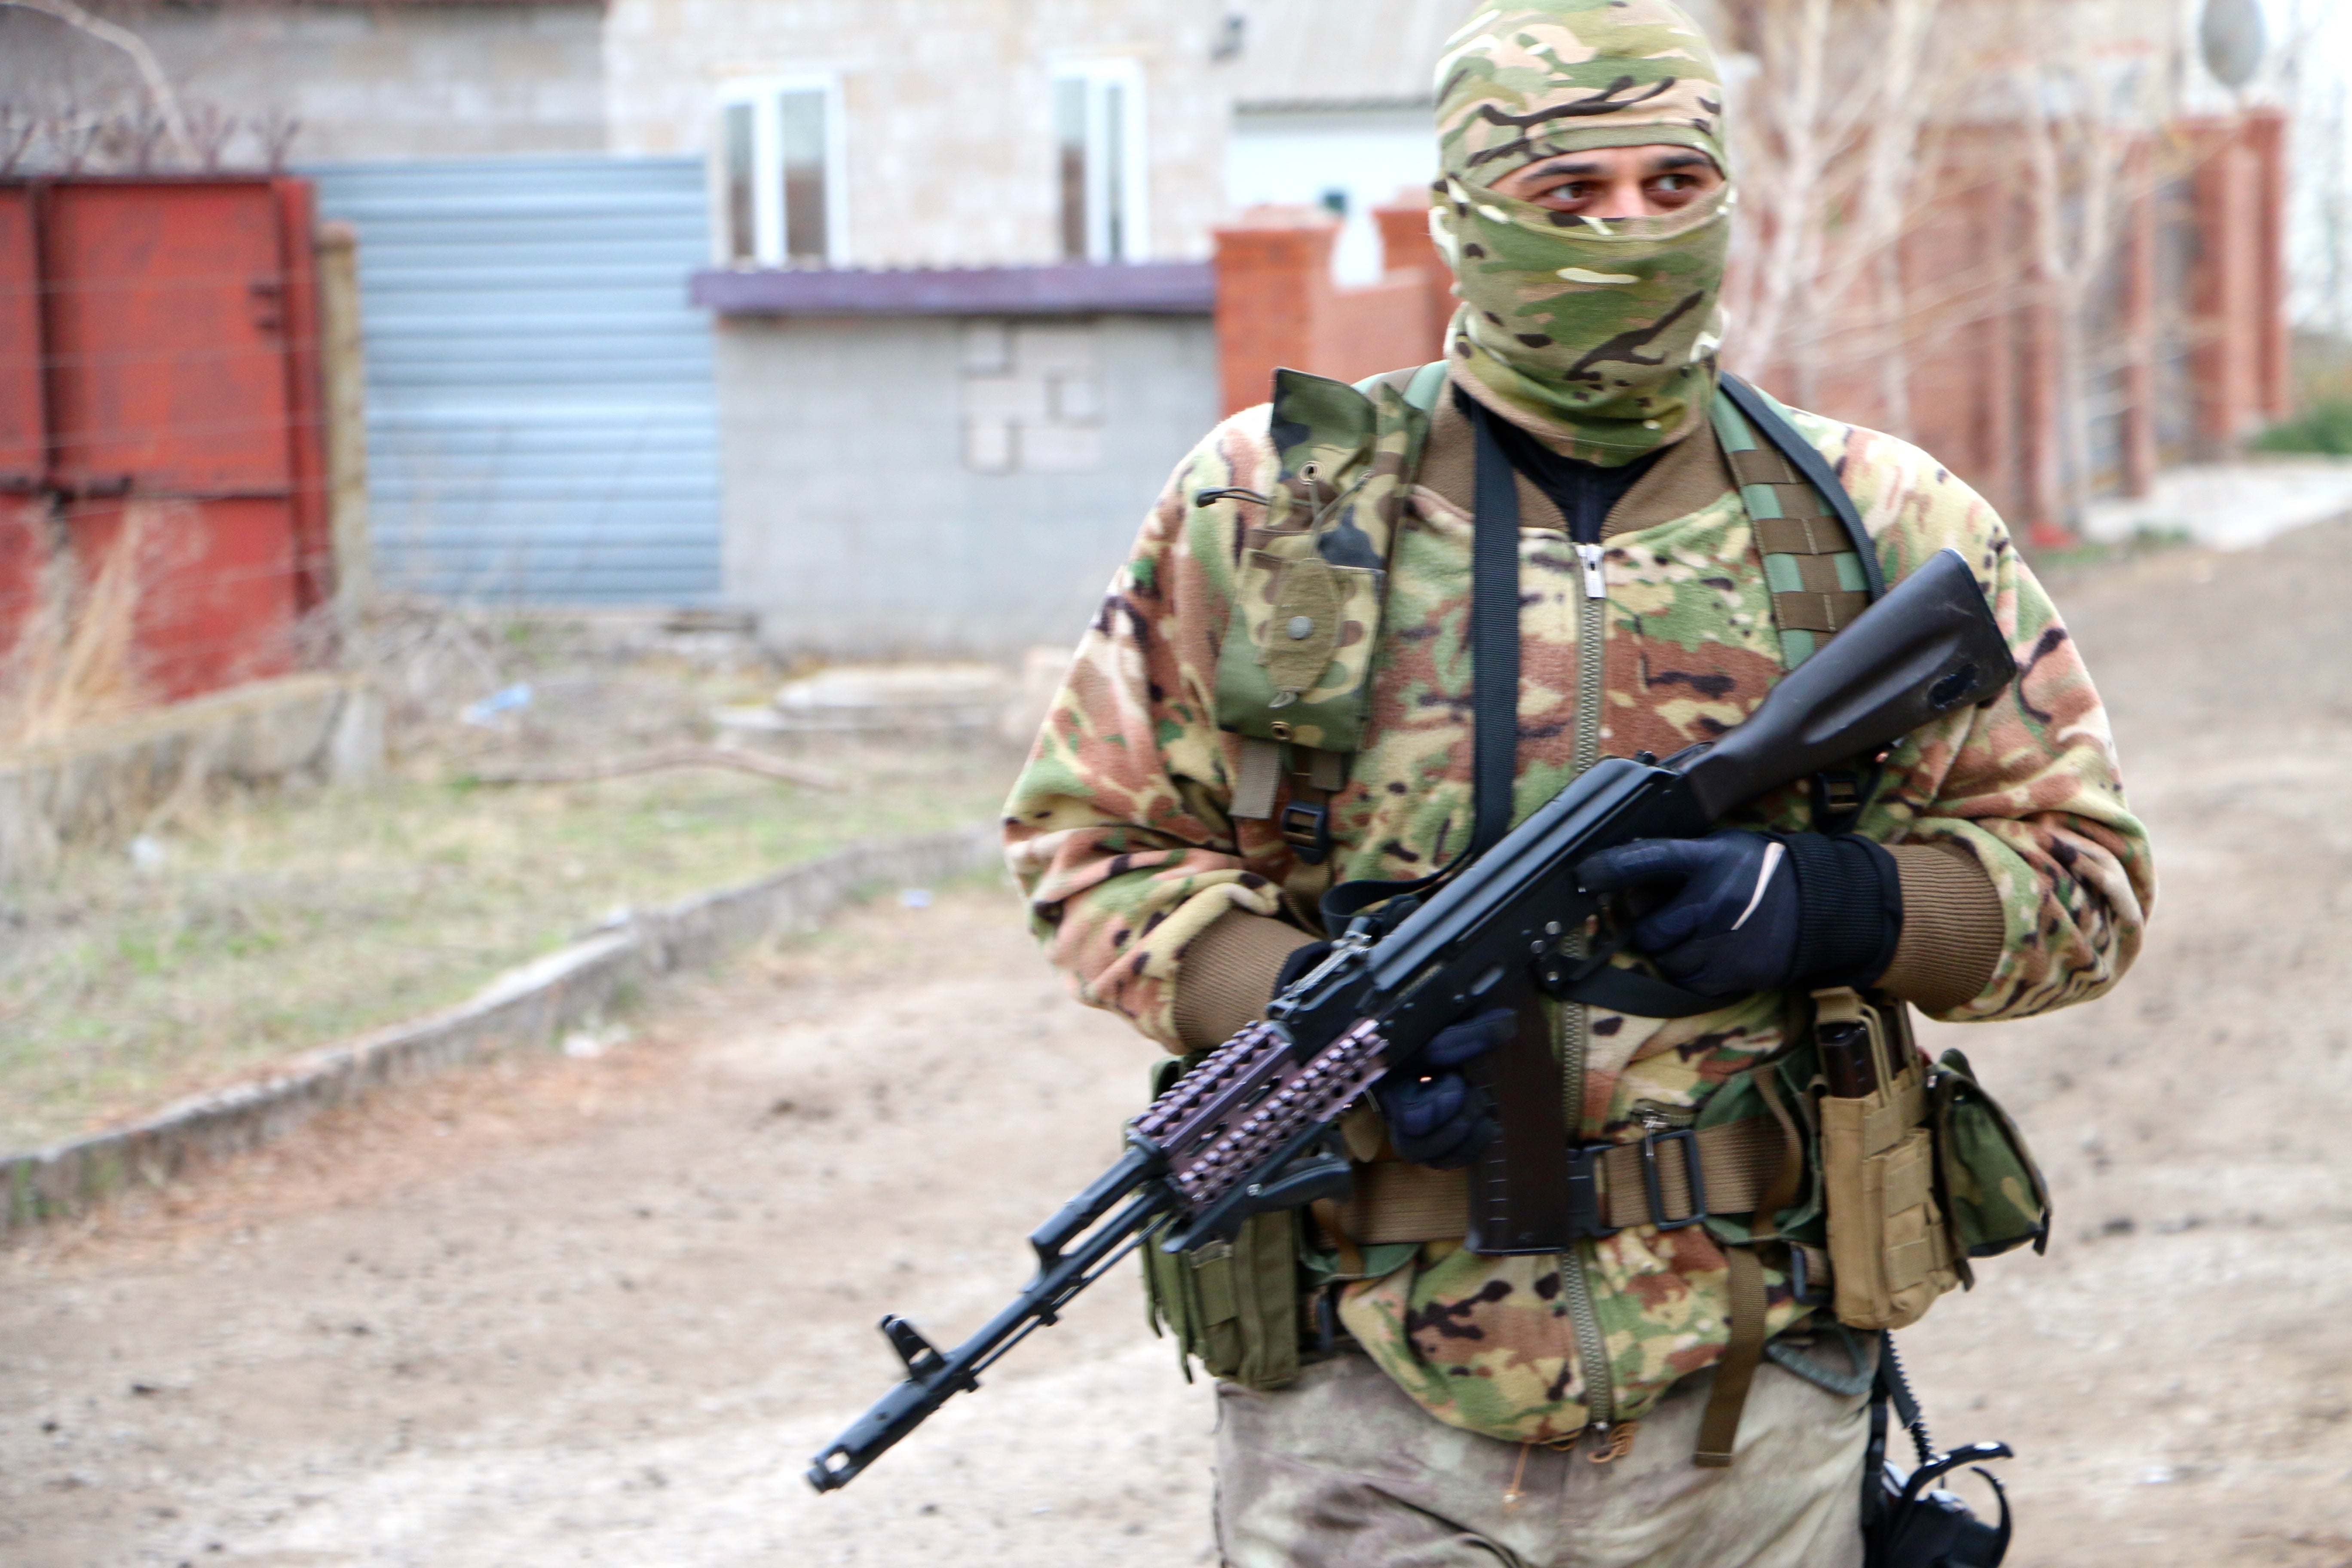 An Azov Regiment soldier near the front lines in Berdyans'ke. (Photo: Nolan Peterson/The Daily Signal)